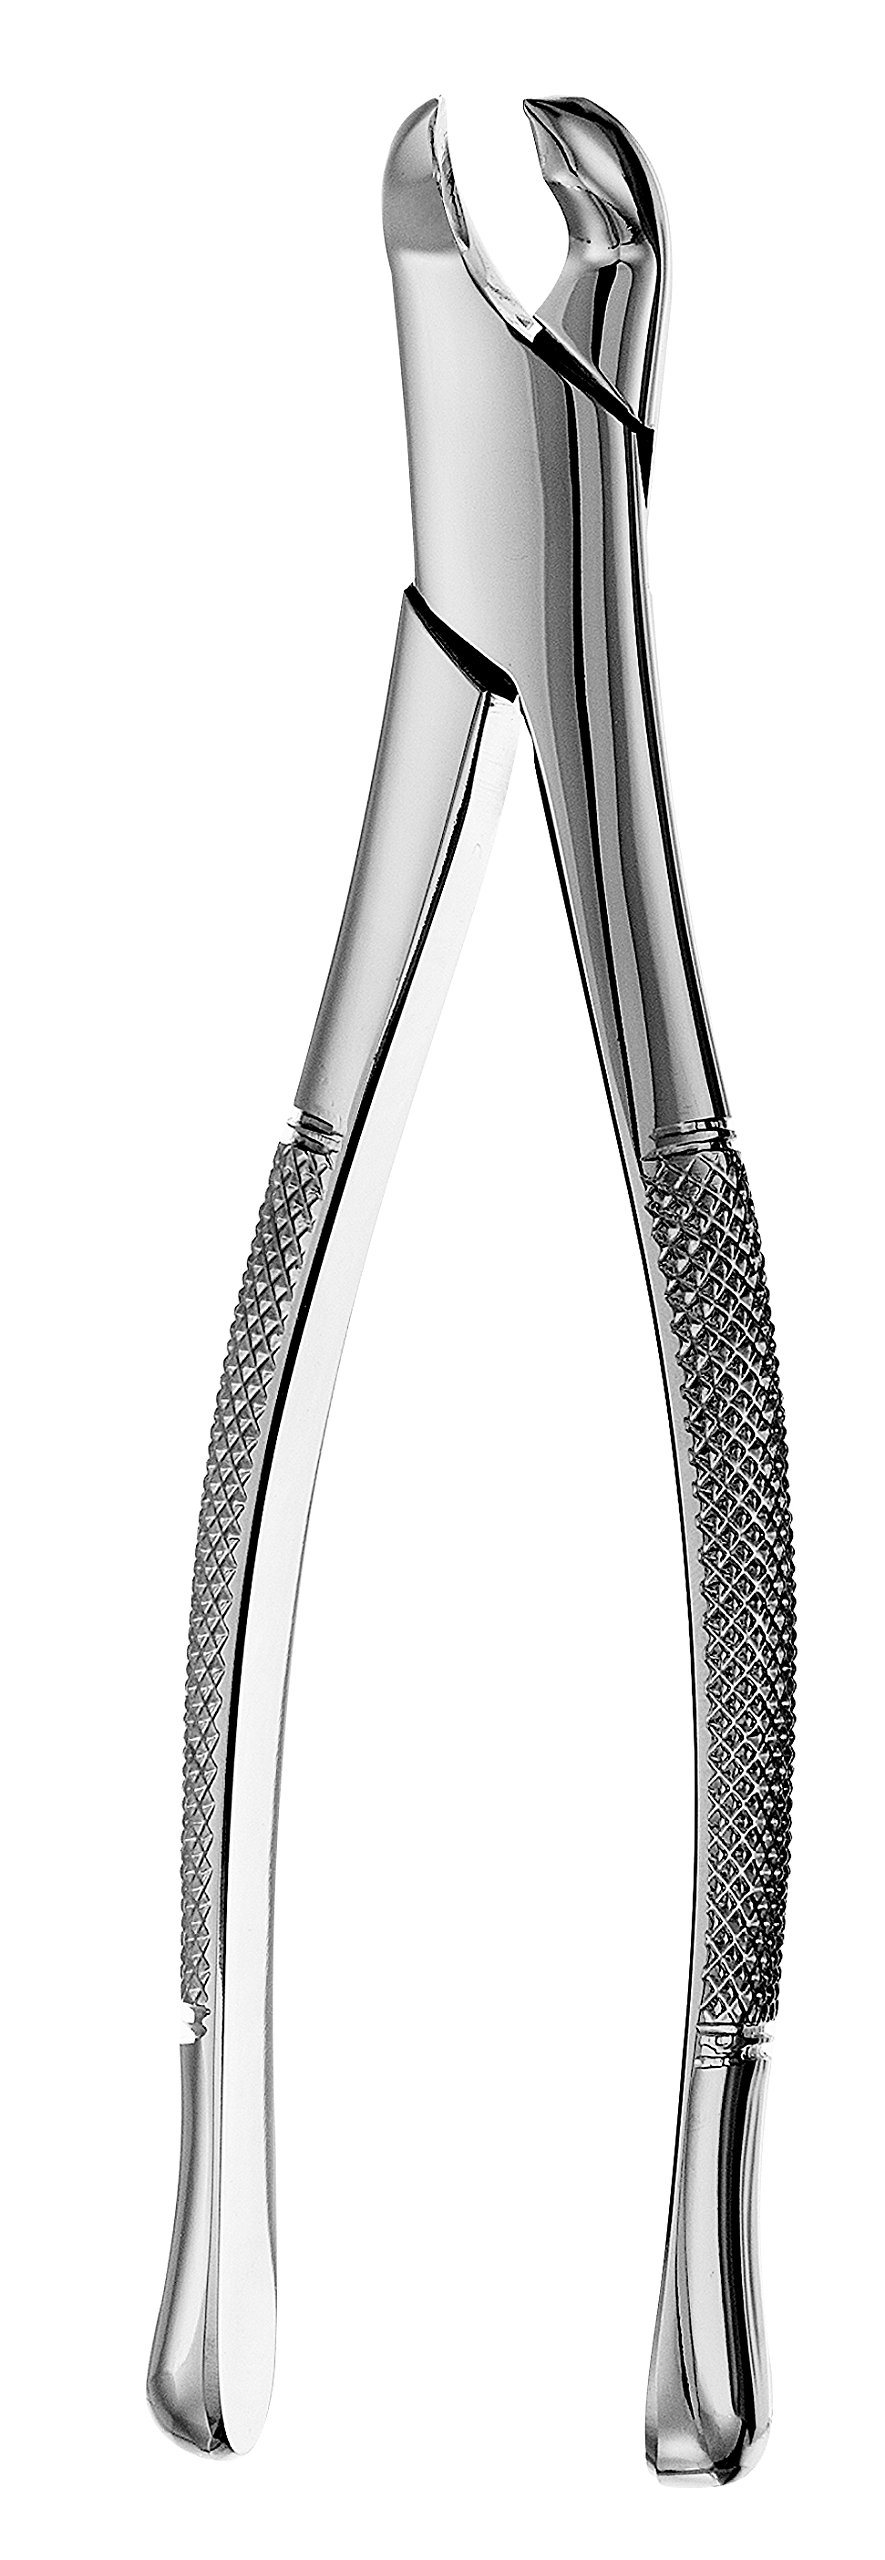 Hu-Friedy F18L #18L Harris Forceps, Left by HU FRIEDY